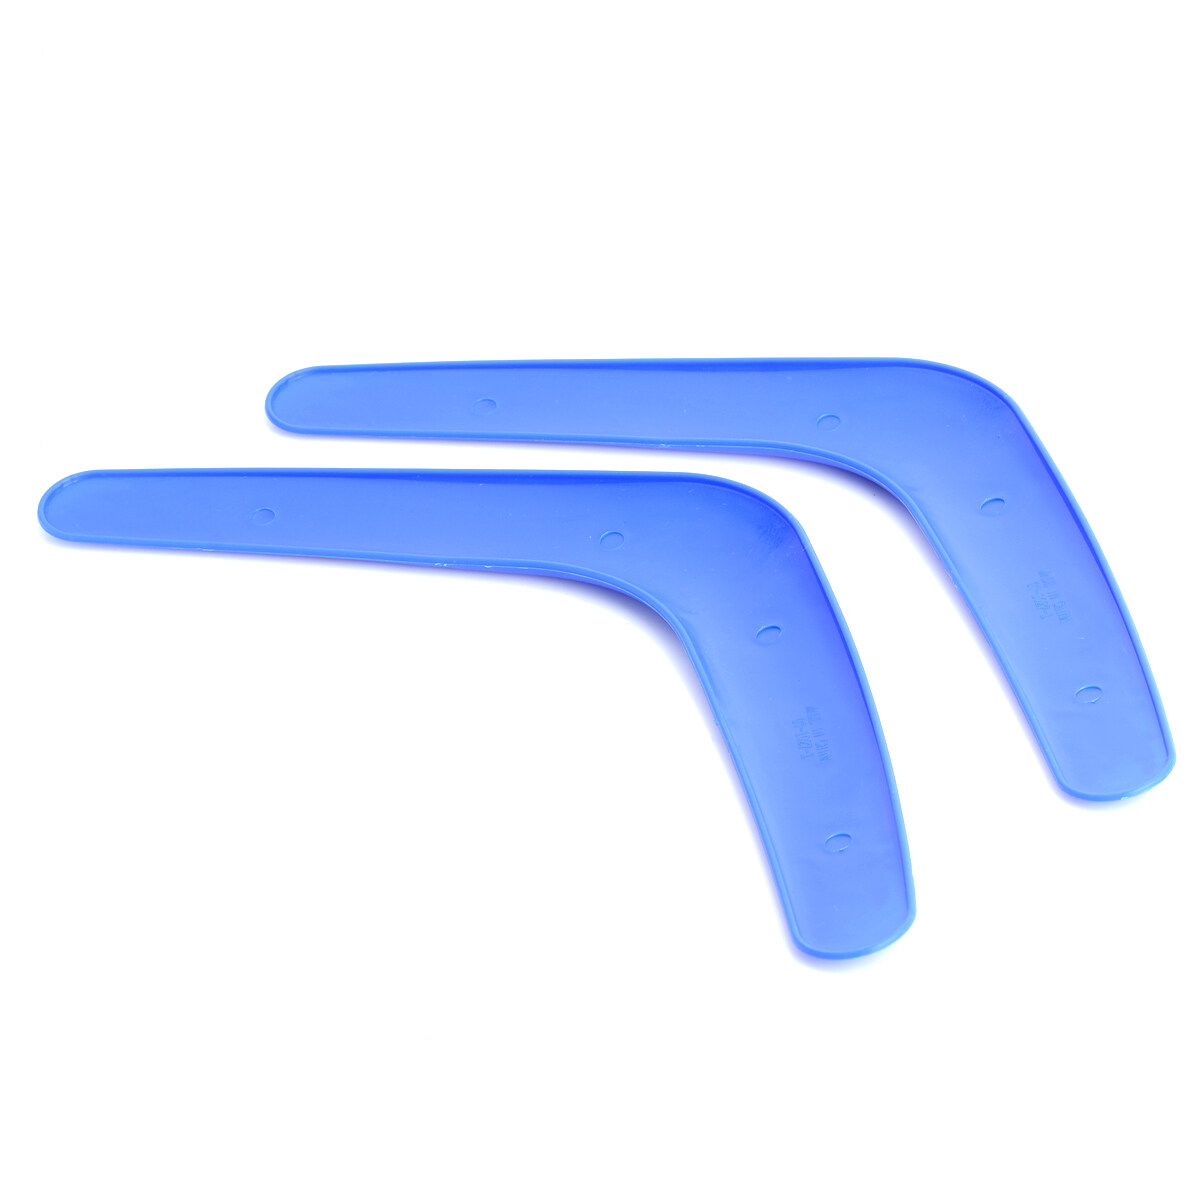 Sports V-Style Outdoor Flying Boomerang - Blue (2 PCS) - intl